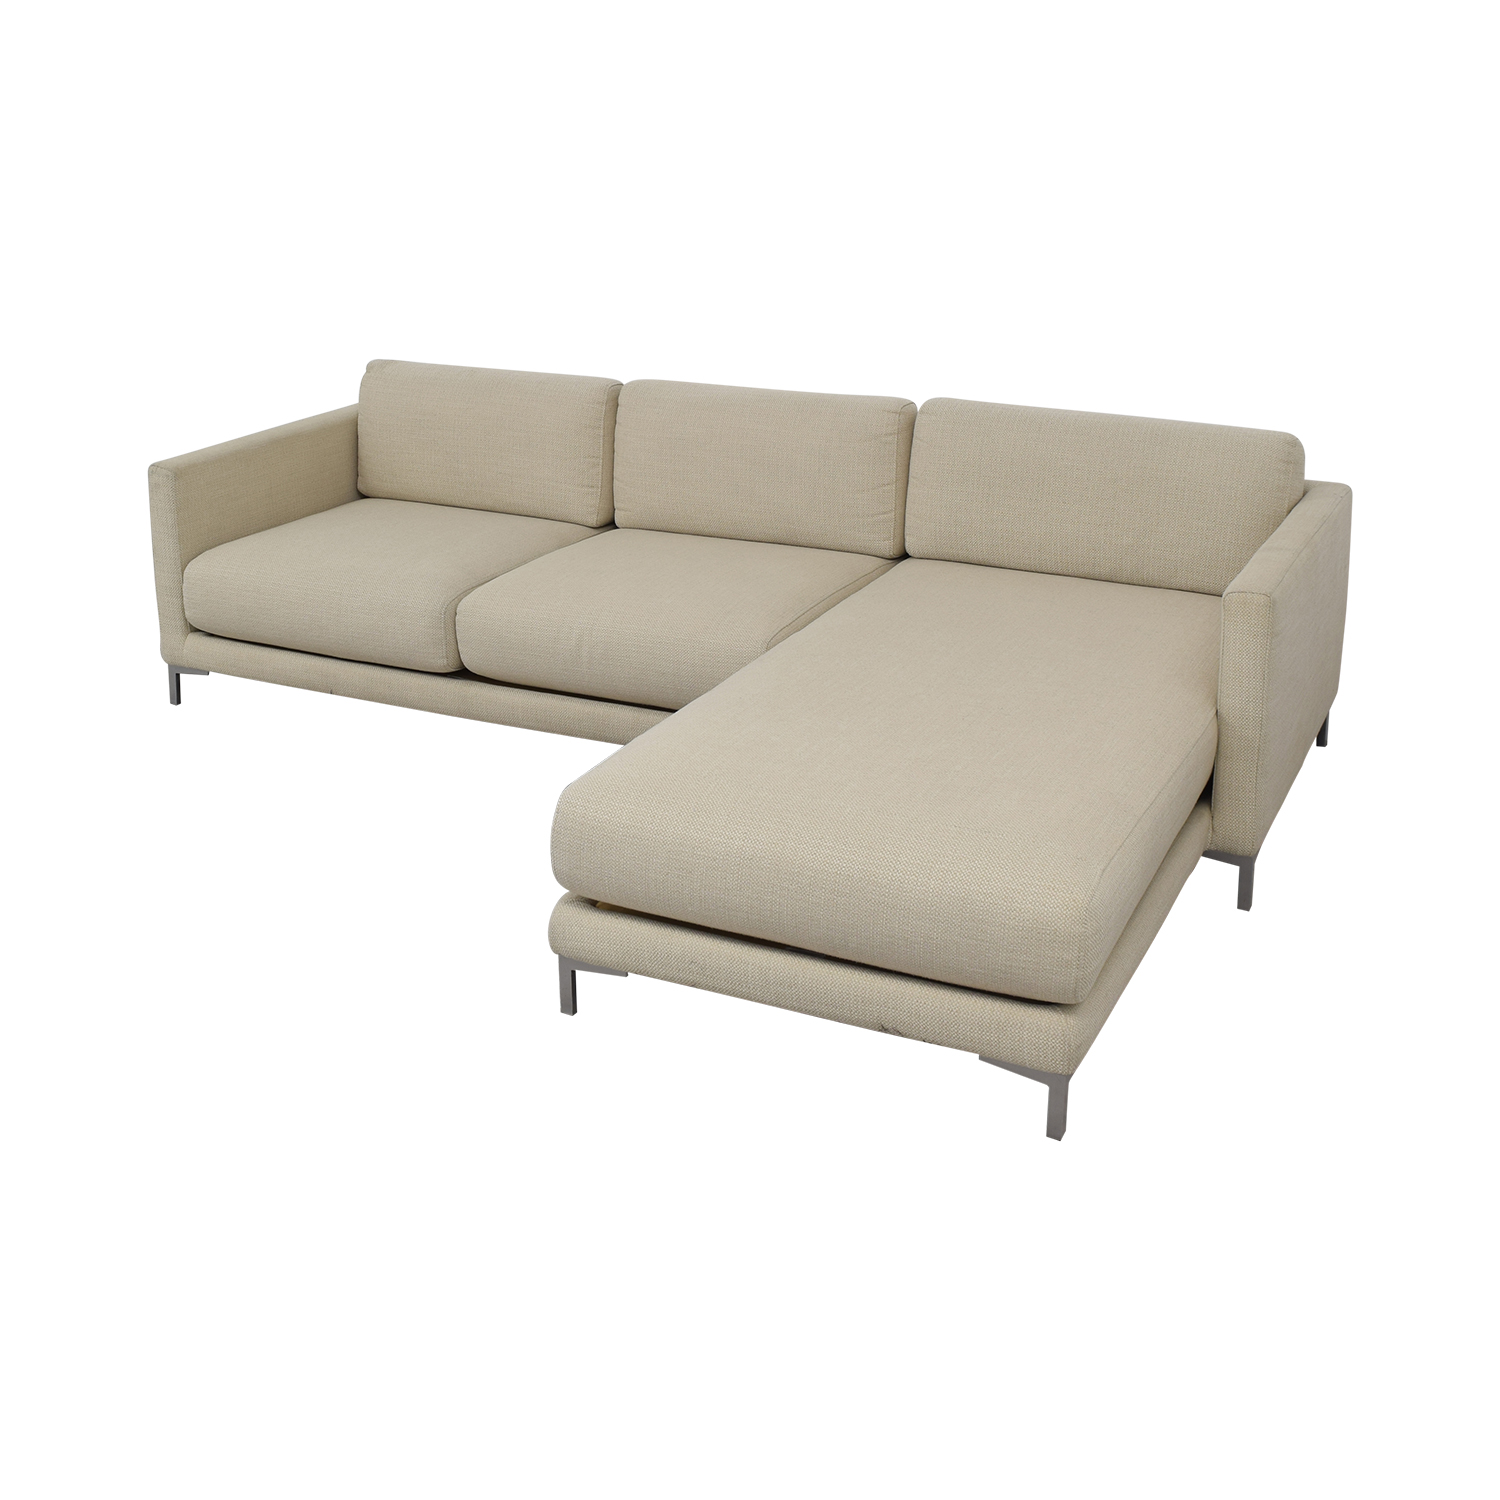 CB2 CB2 District Sectional Sofa with Chaise Sofas